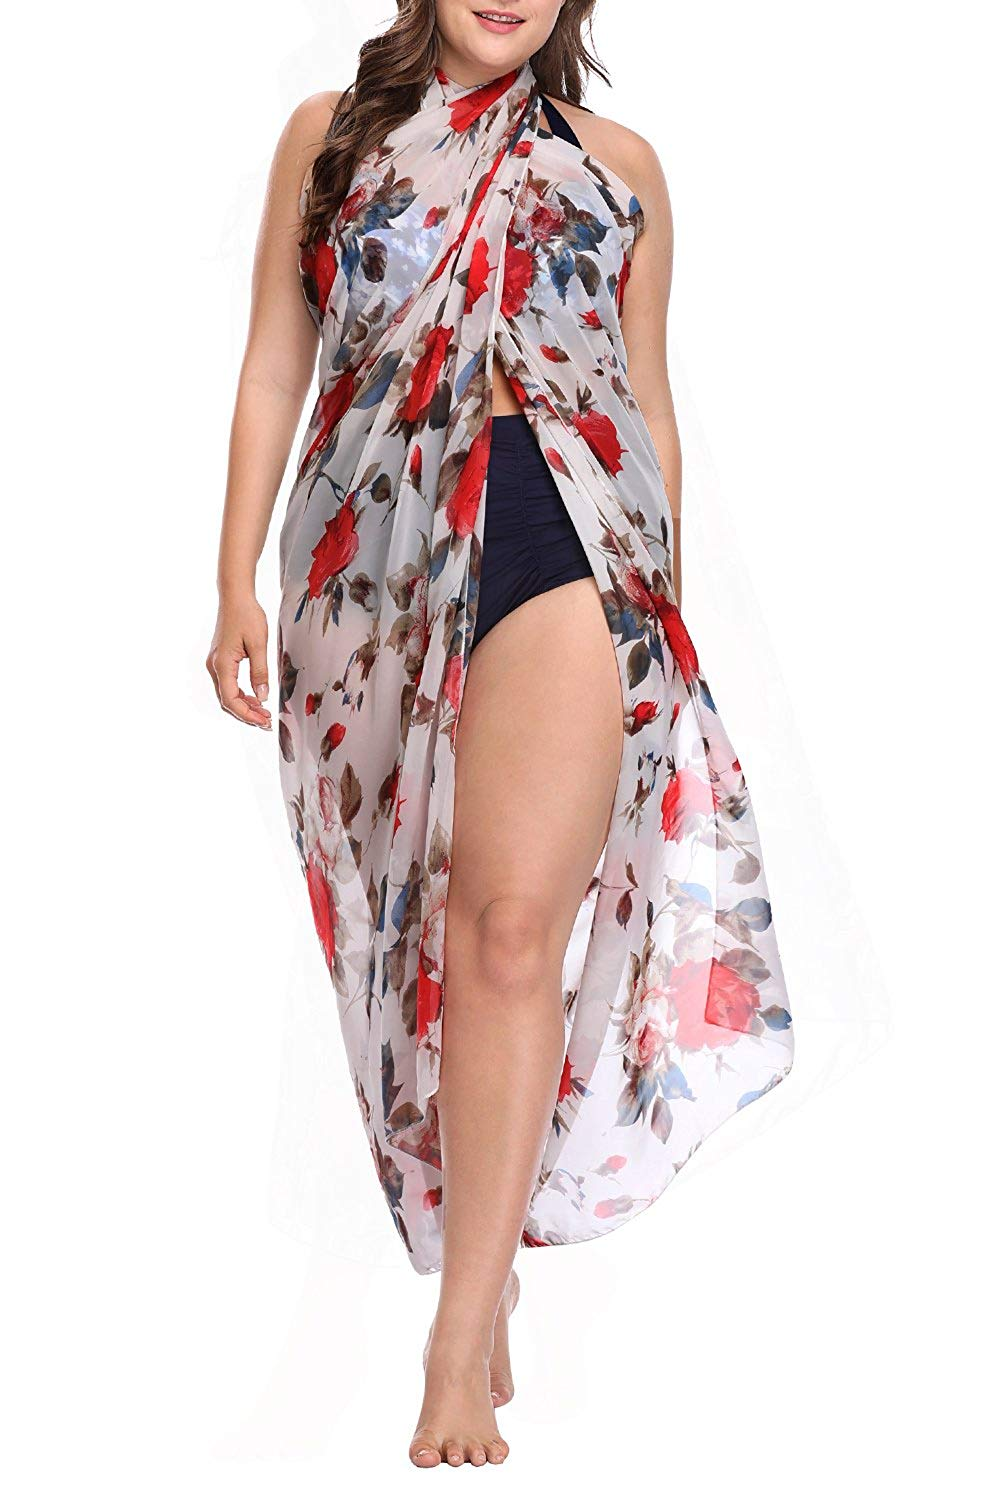 9d3f60d7bb1b9 Get Quotations · Sociala Women s Swimsuit Beach Cover up Plus Size Bathing  Suit Wrap Cover Ups